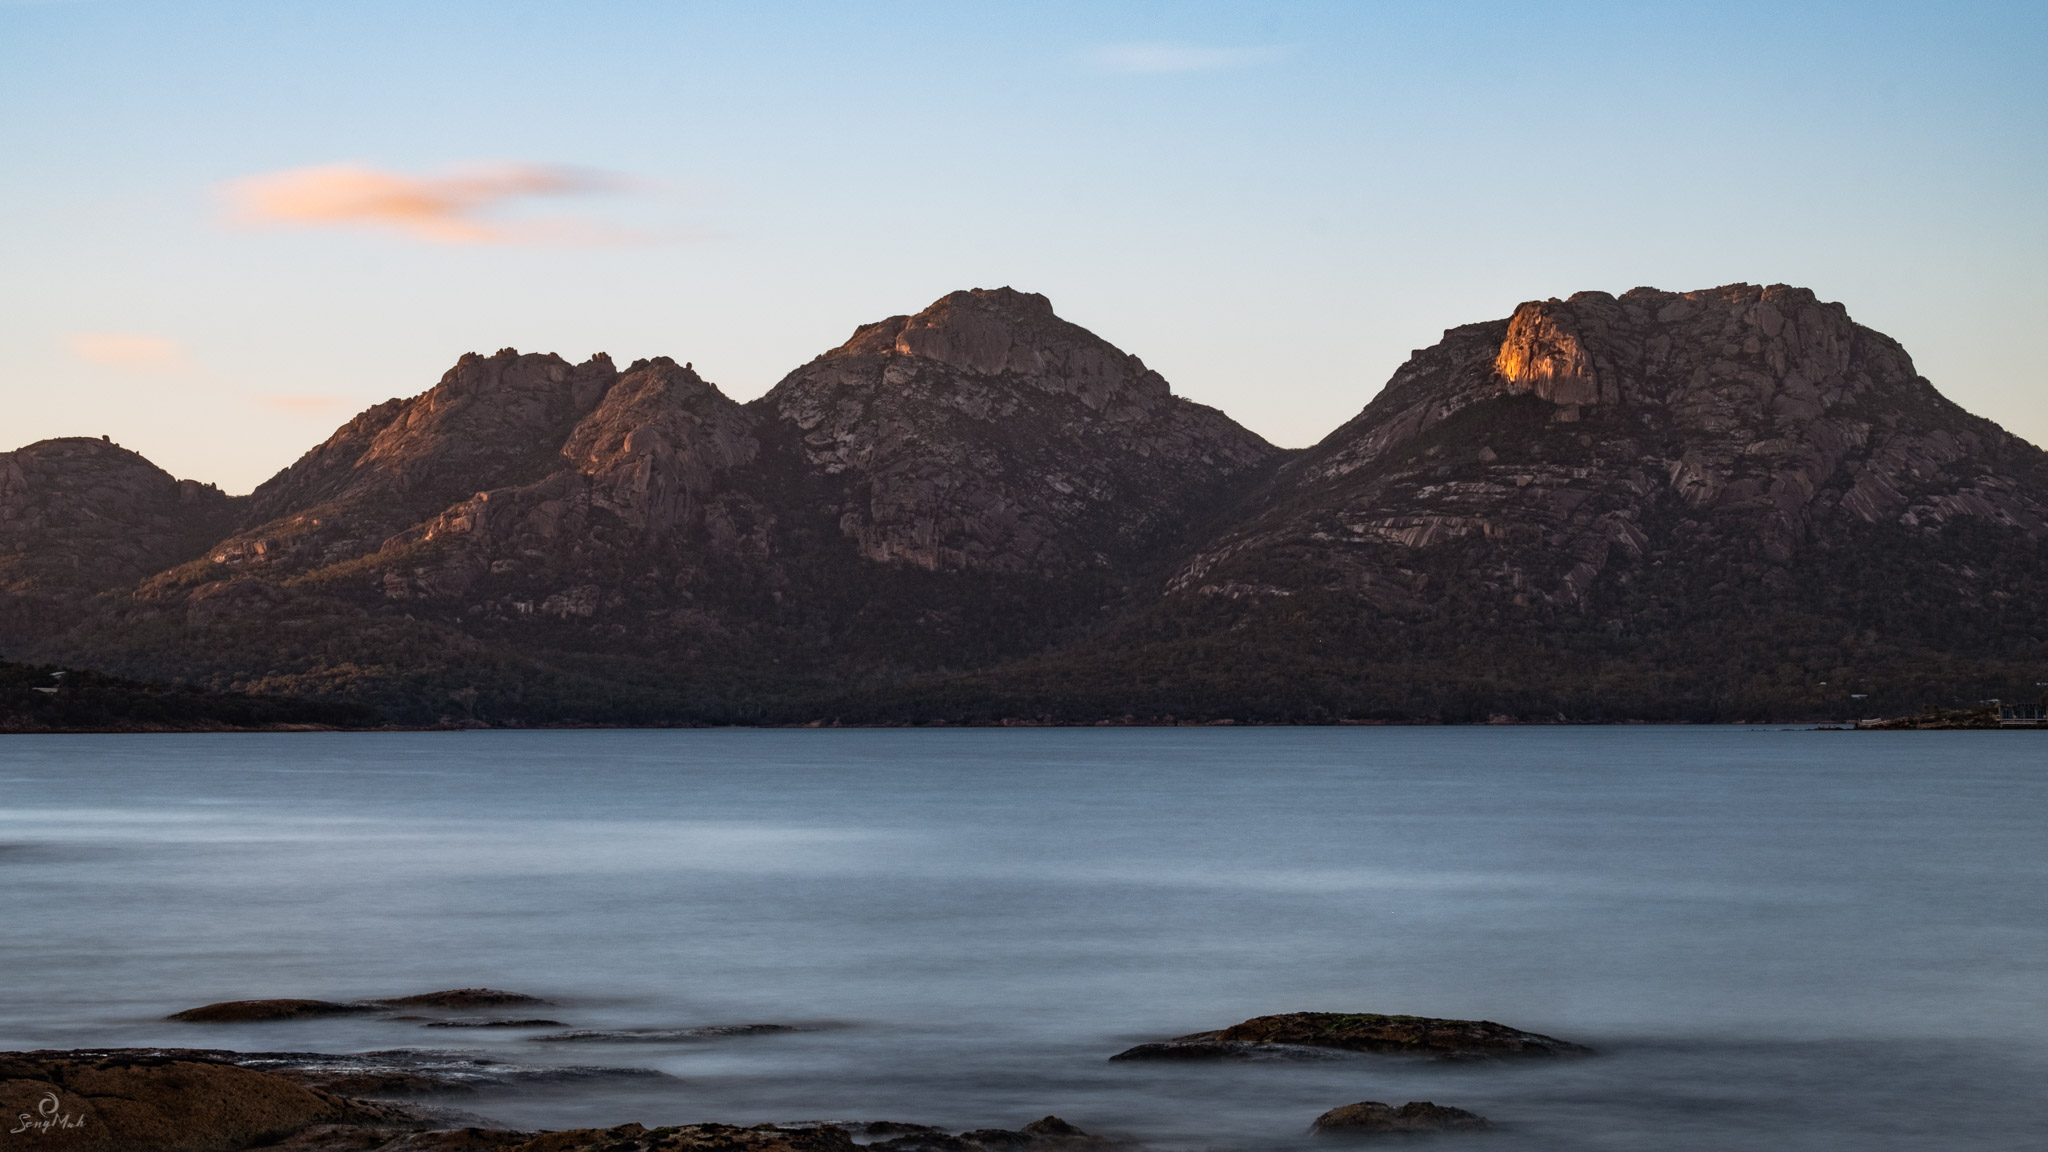 Freycinet Peninsula with Hazards